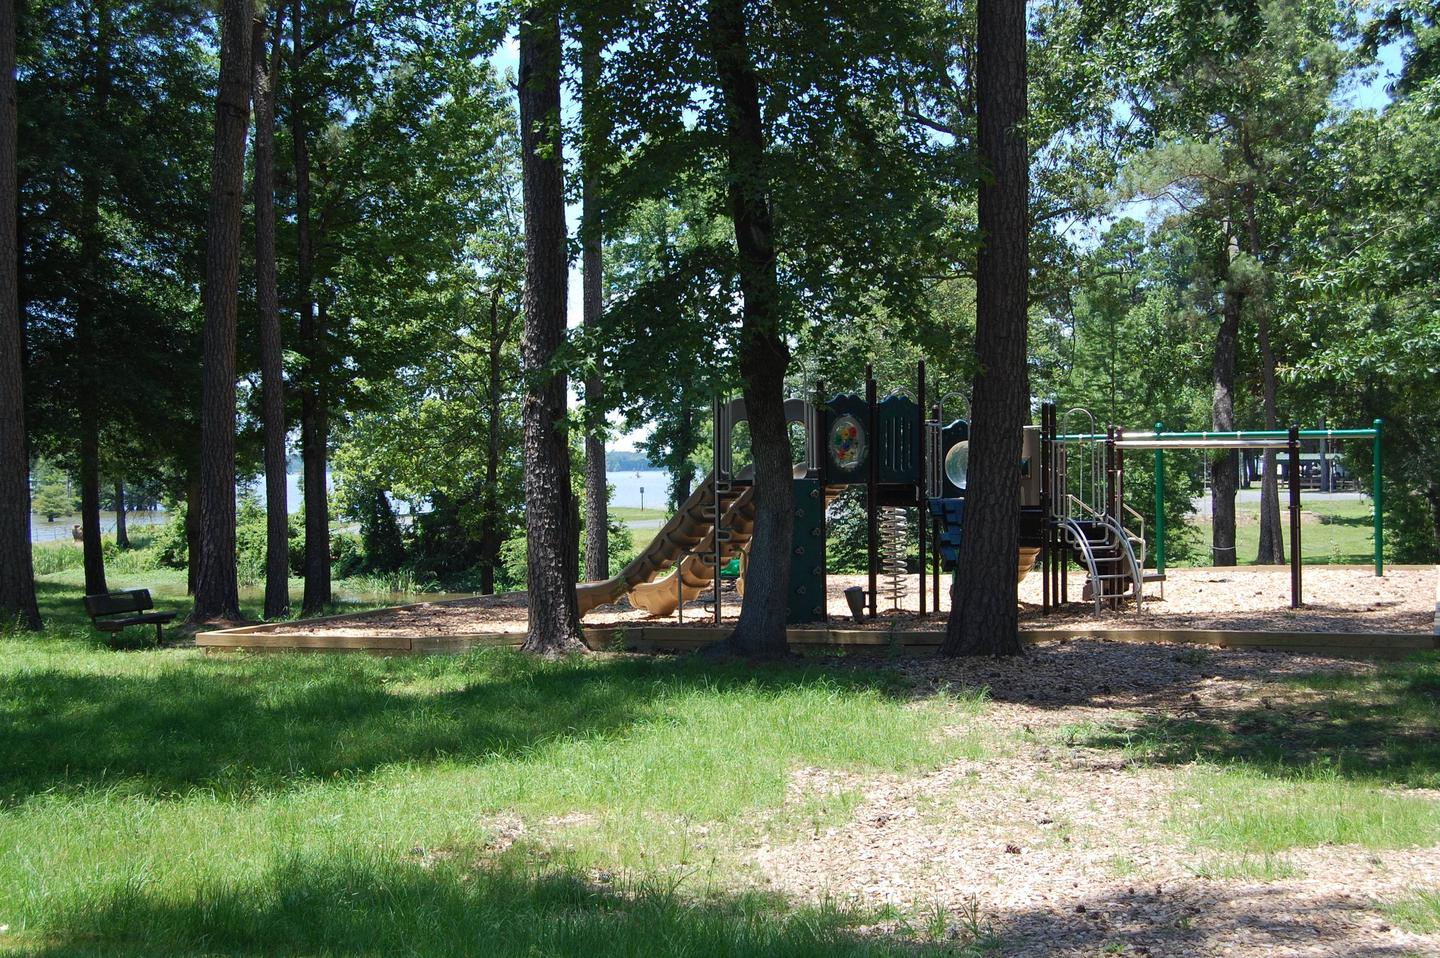 COTTONSHED PARK PLAYGROUND